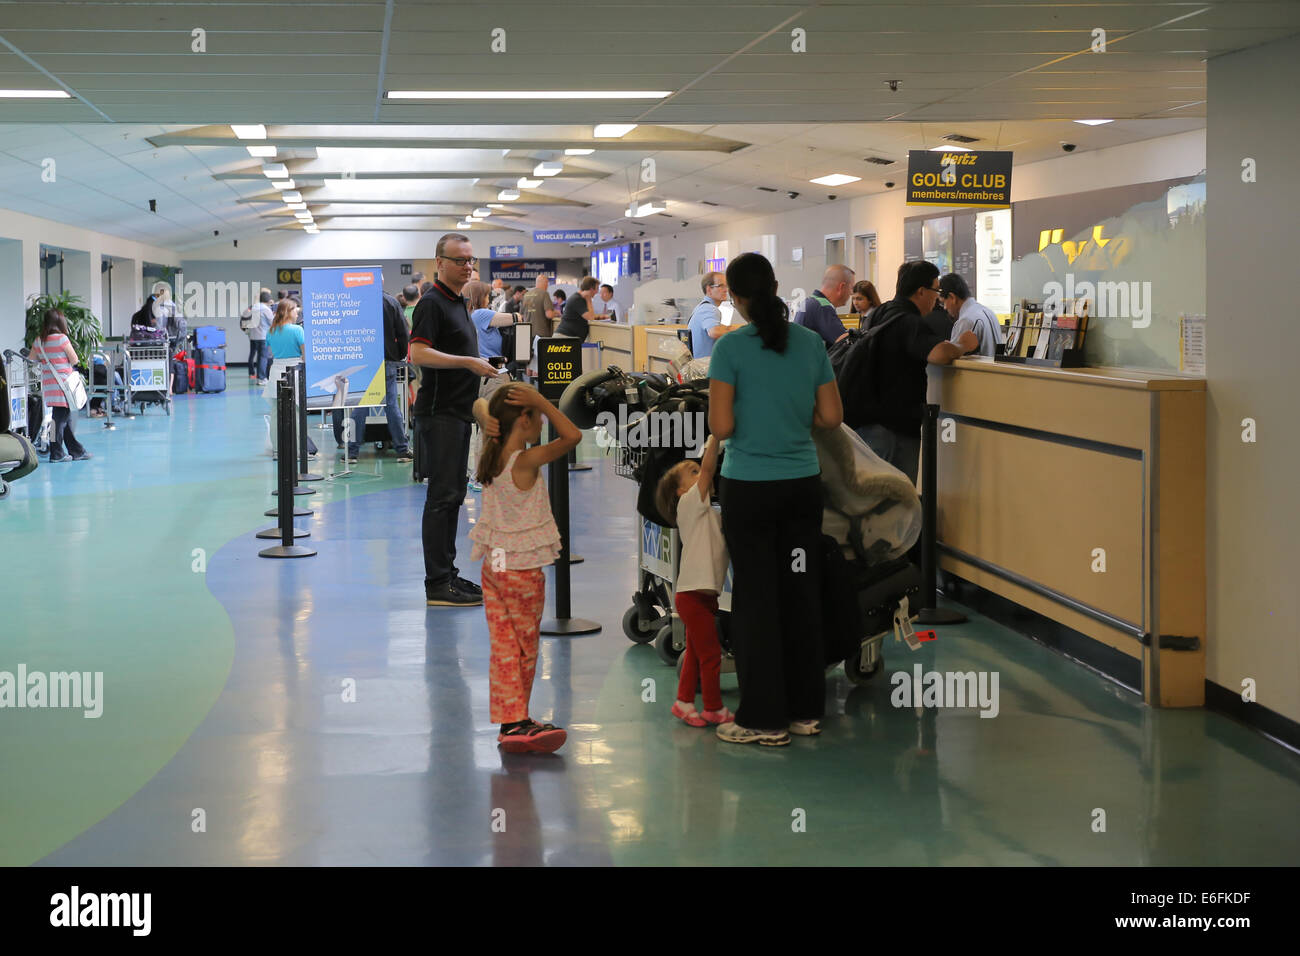 car rental airport stockfotos car rental airport bilder alamy. Black Bedroom Furniture Sets. Home Design Ideas